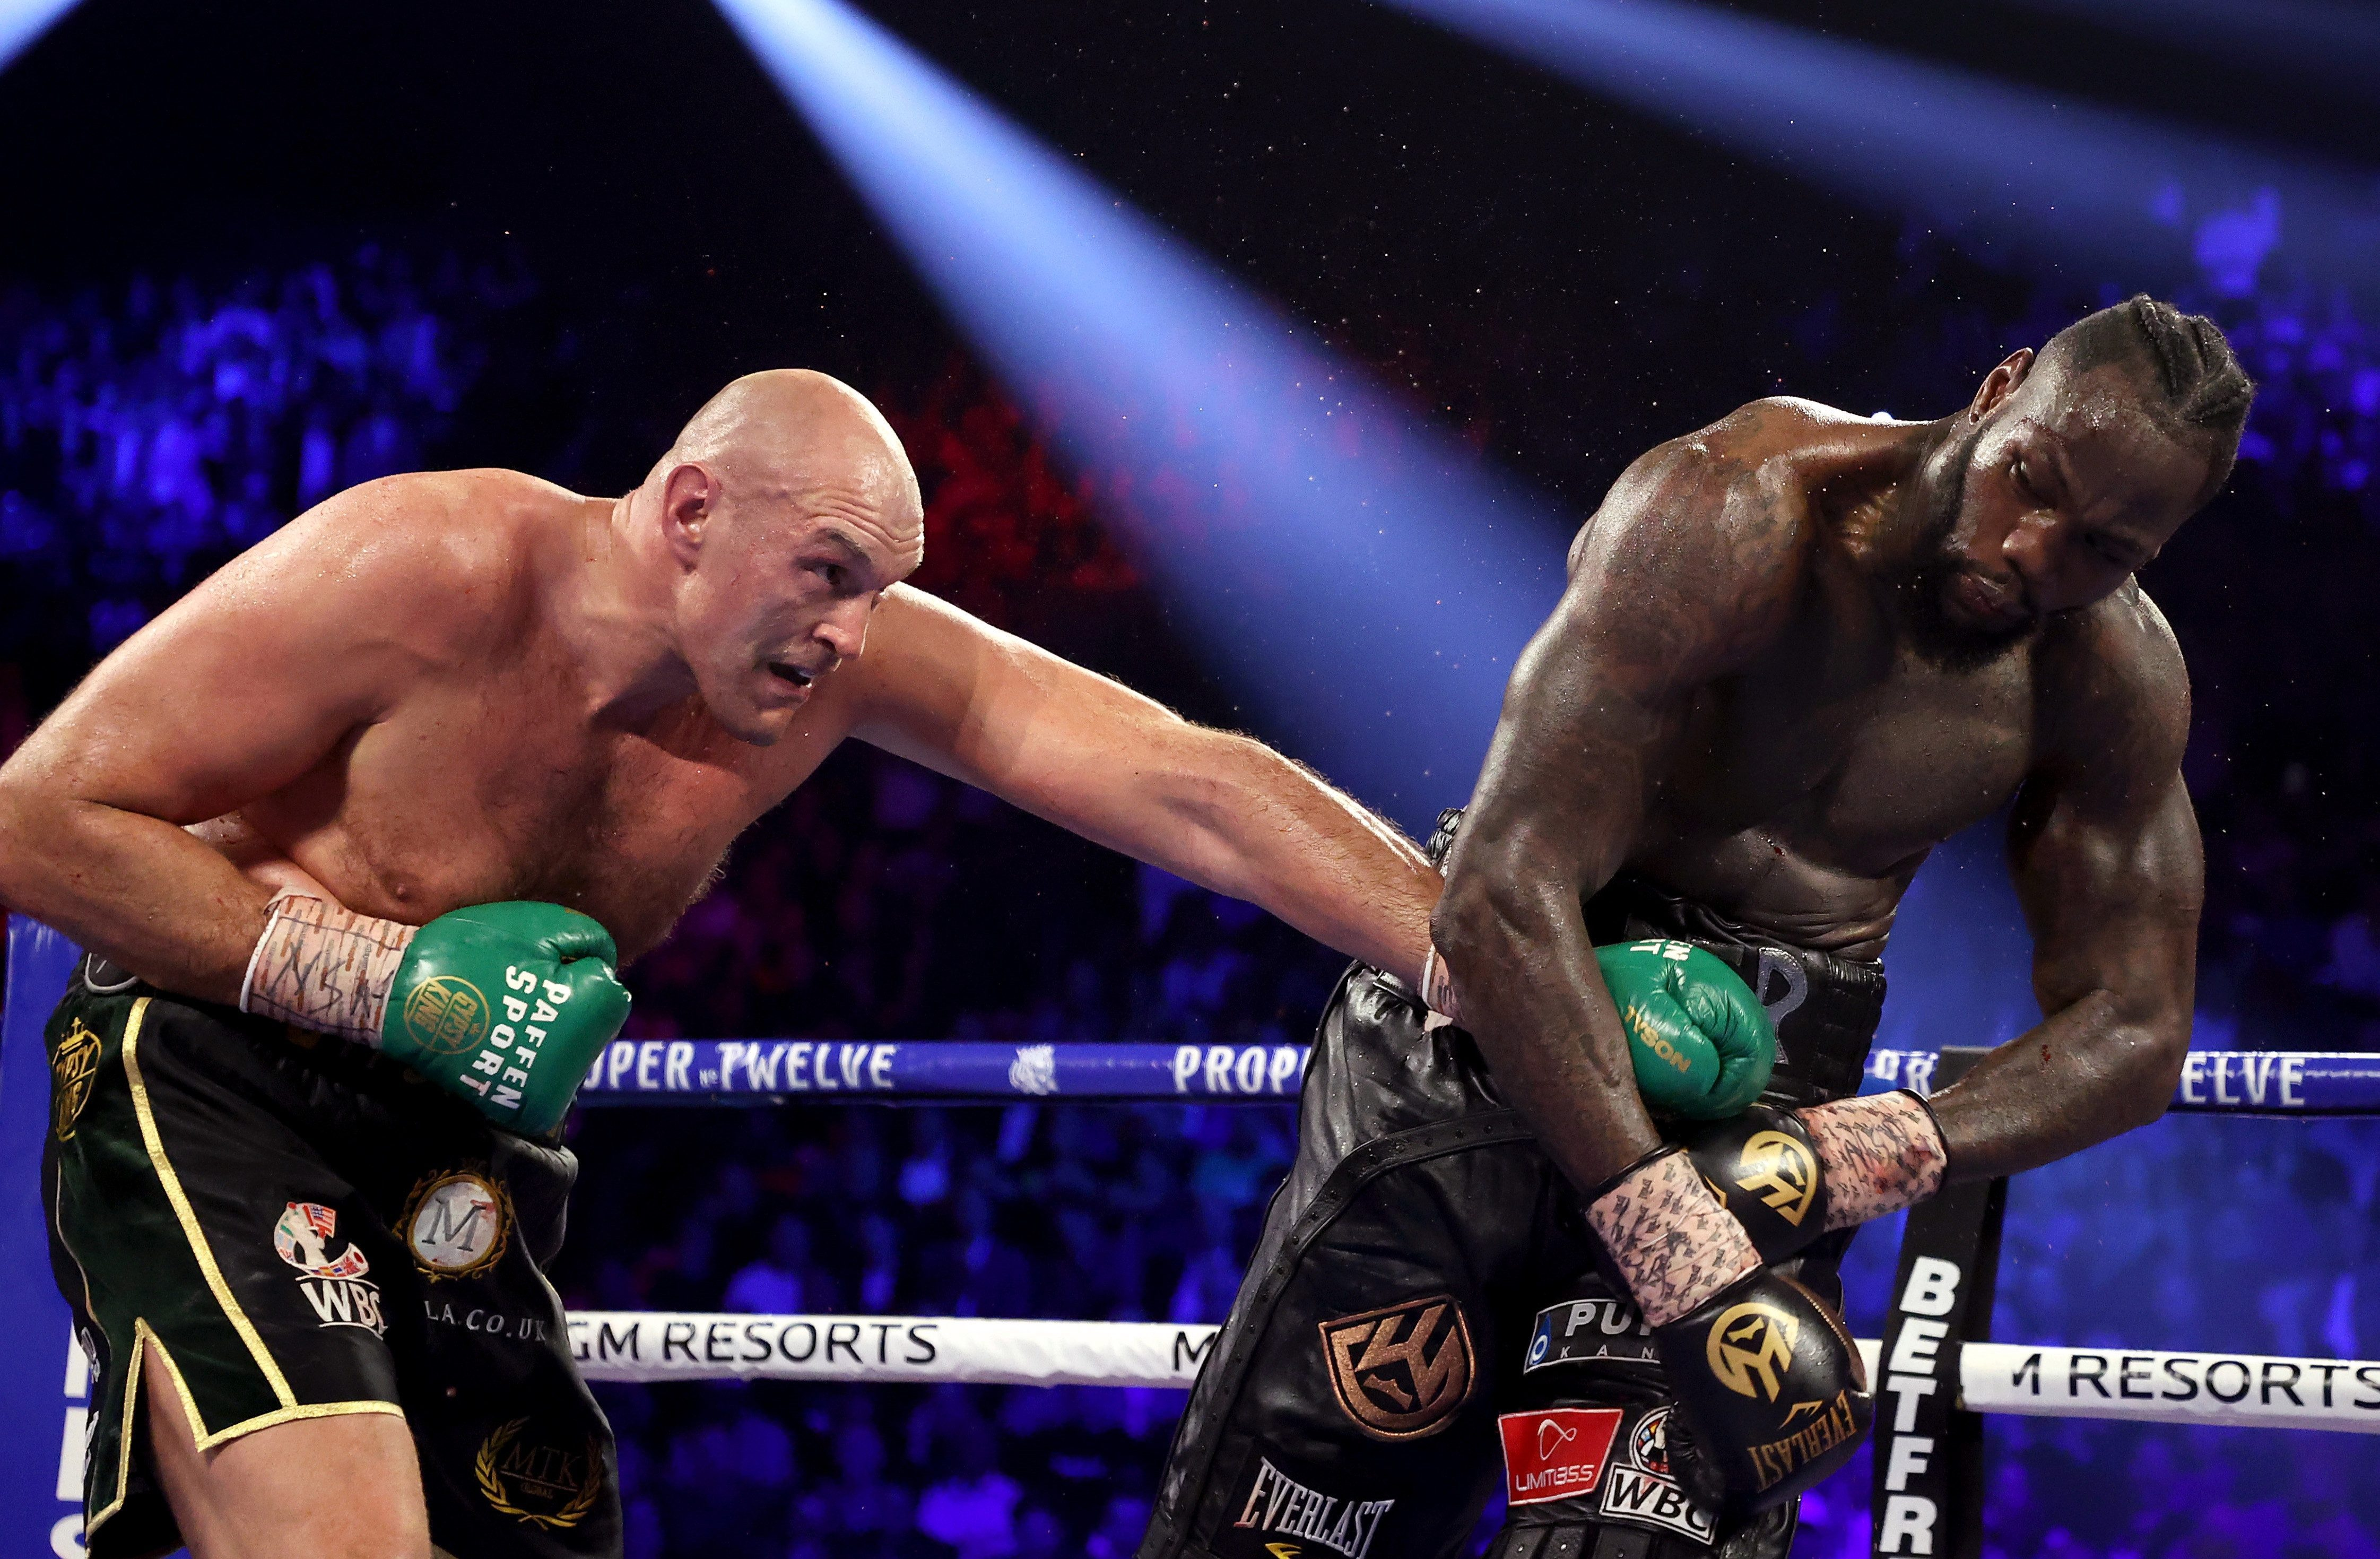 Tyson Fury vs Deontay Wilder 3 could happen in China or Australia but will take place this year